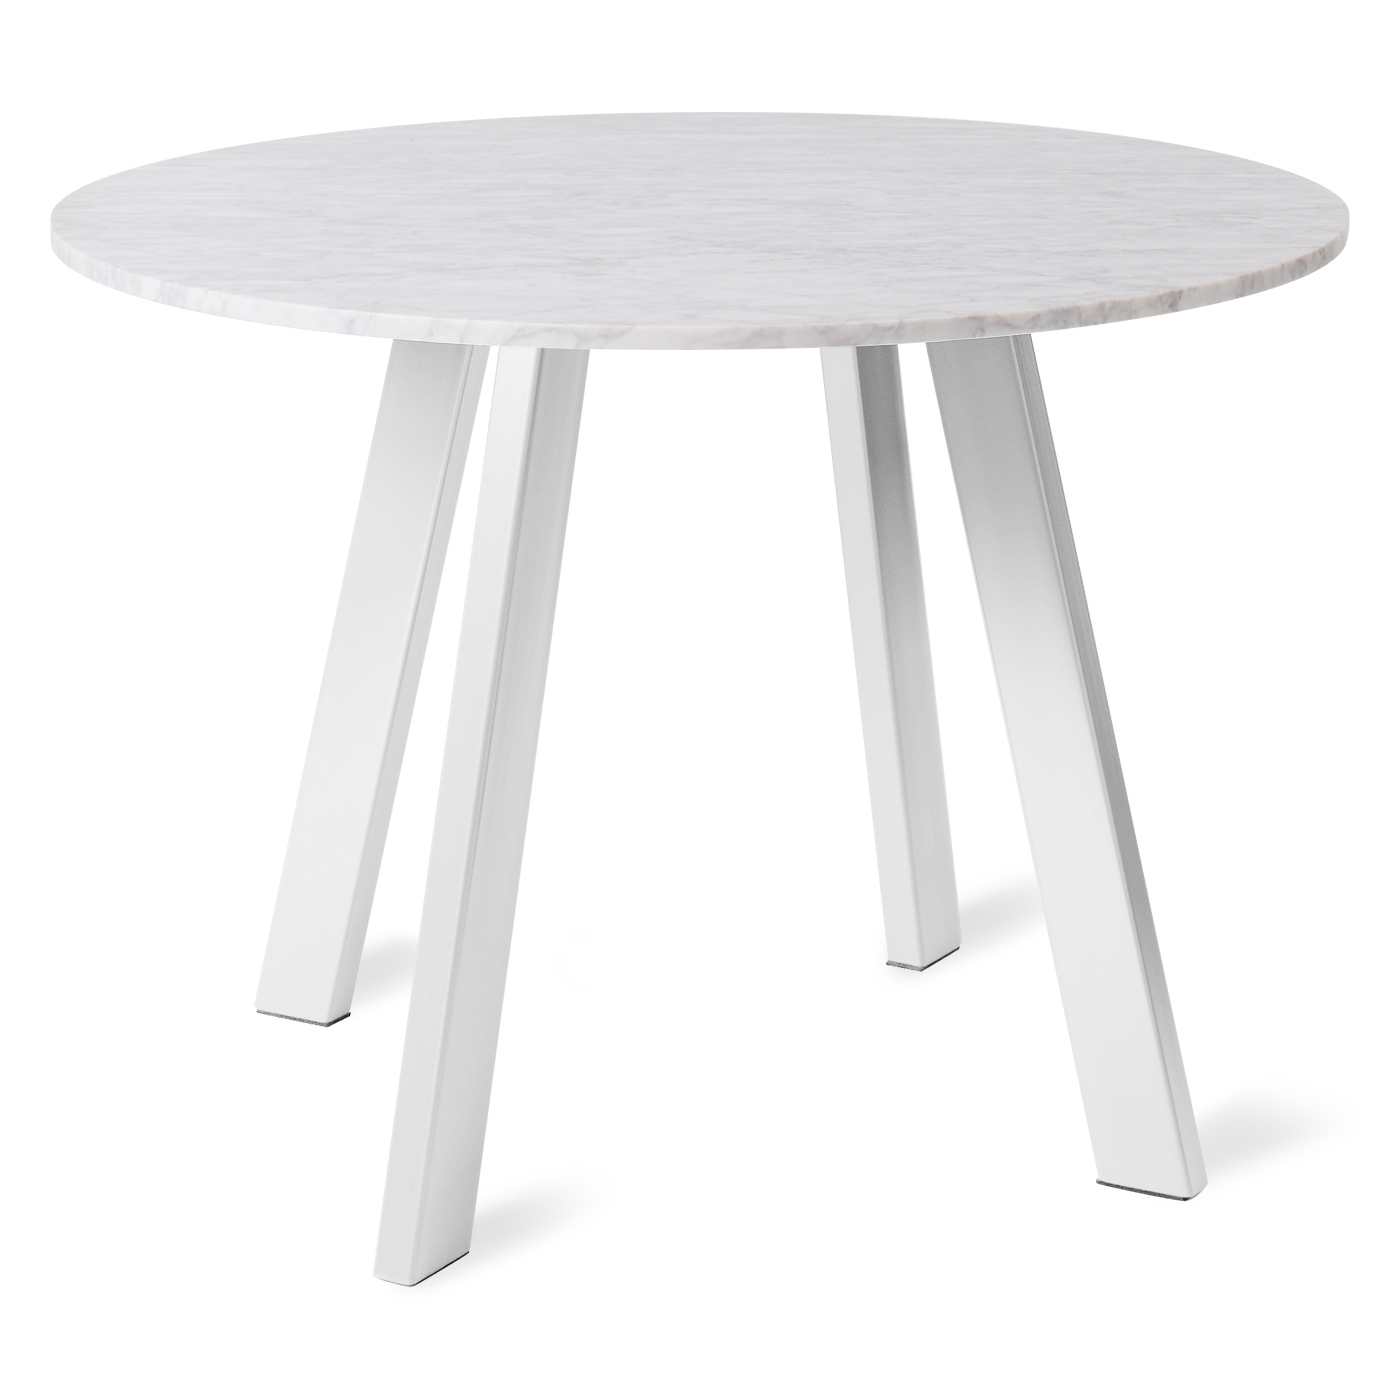 Fashionable Give A New Look To Your Dining Room With White Round Dining Table Pertaining To White Circle Dining Tables (View 20 of 25)